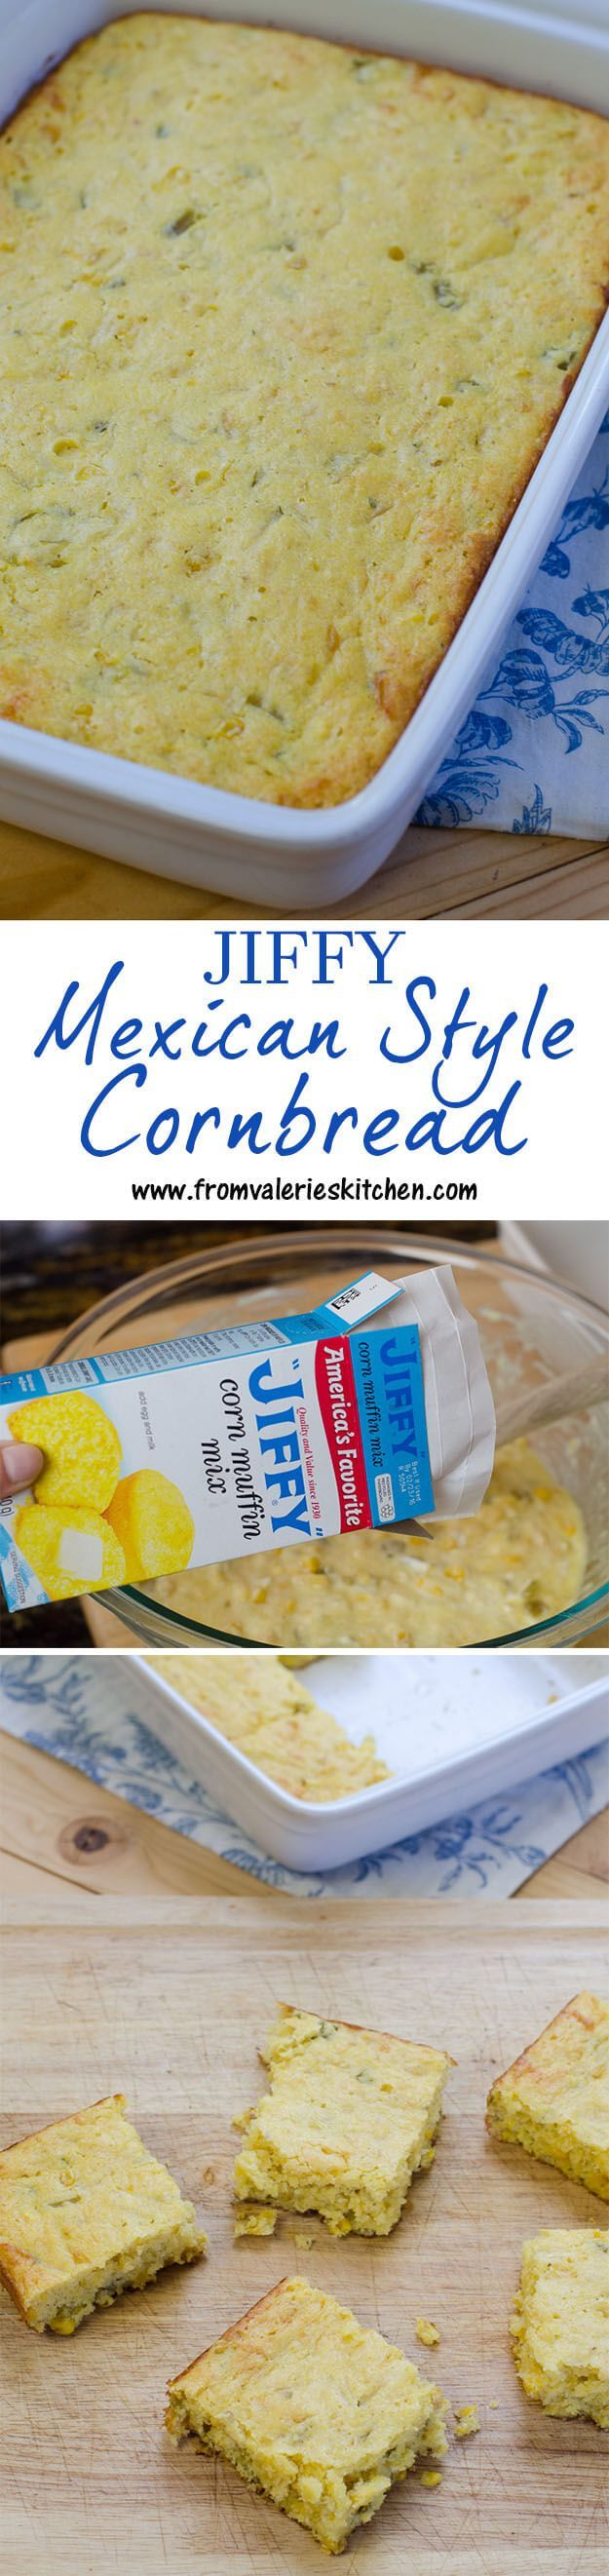 Jiffy Mexican Style Cornbread Mexican Food Recipes Food Recipes